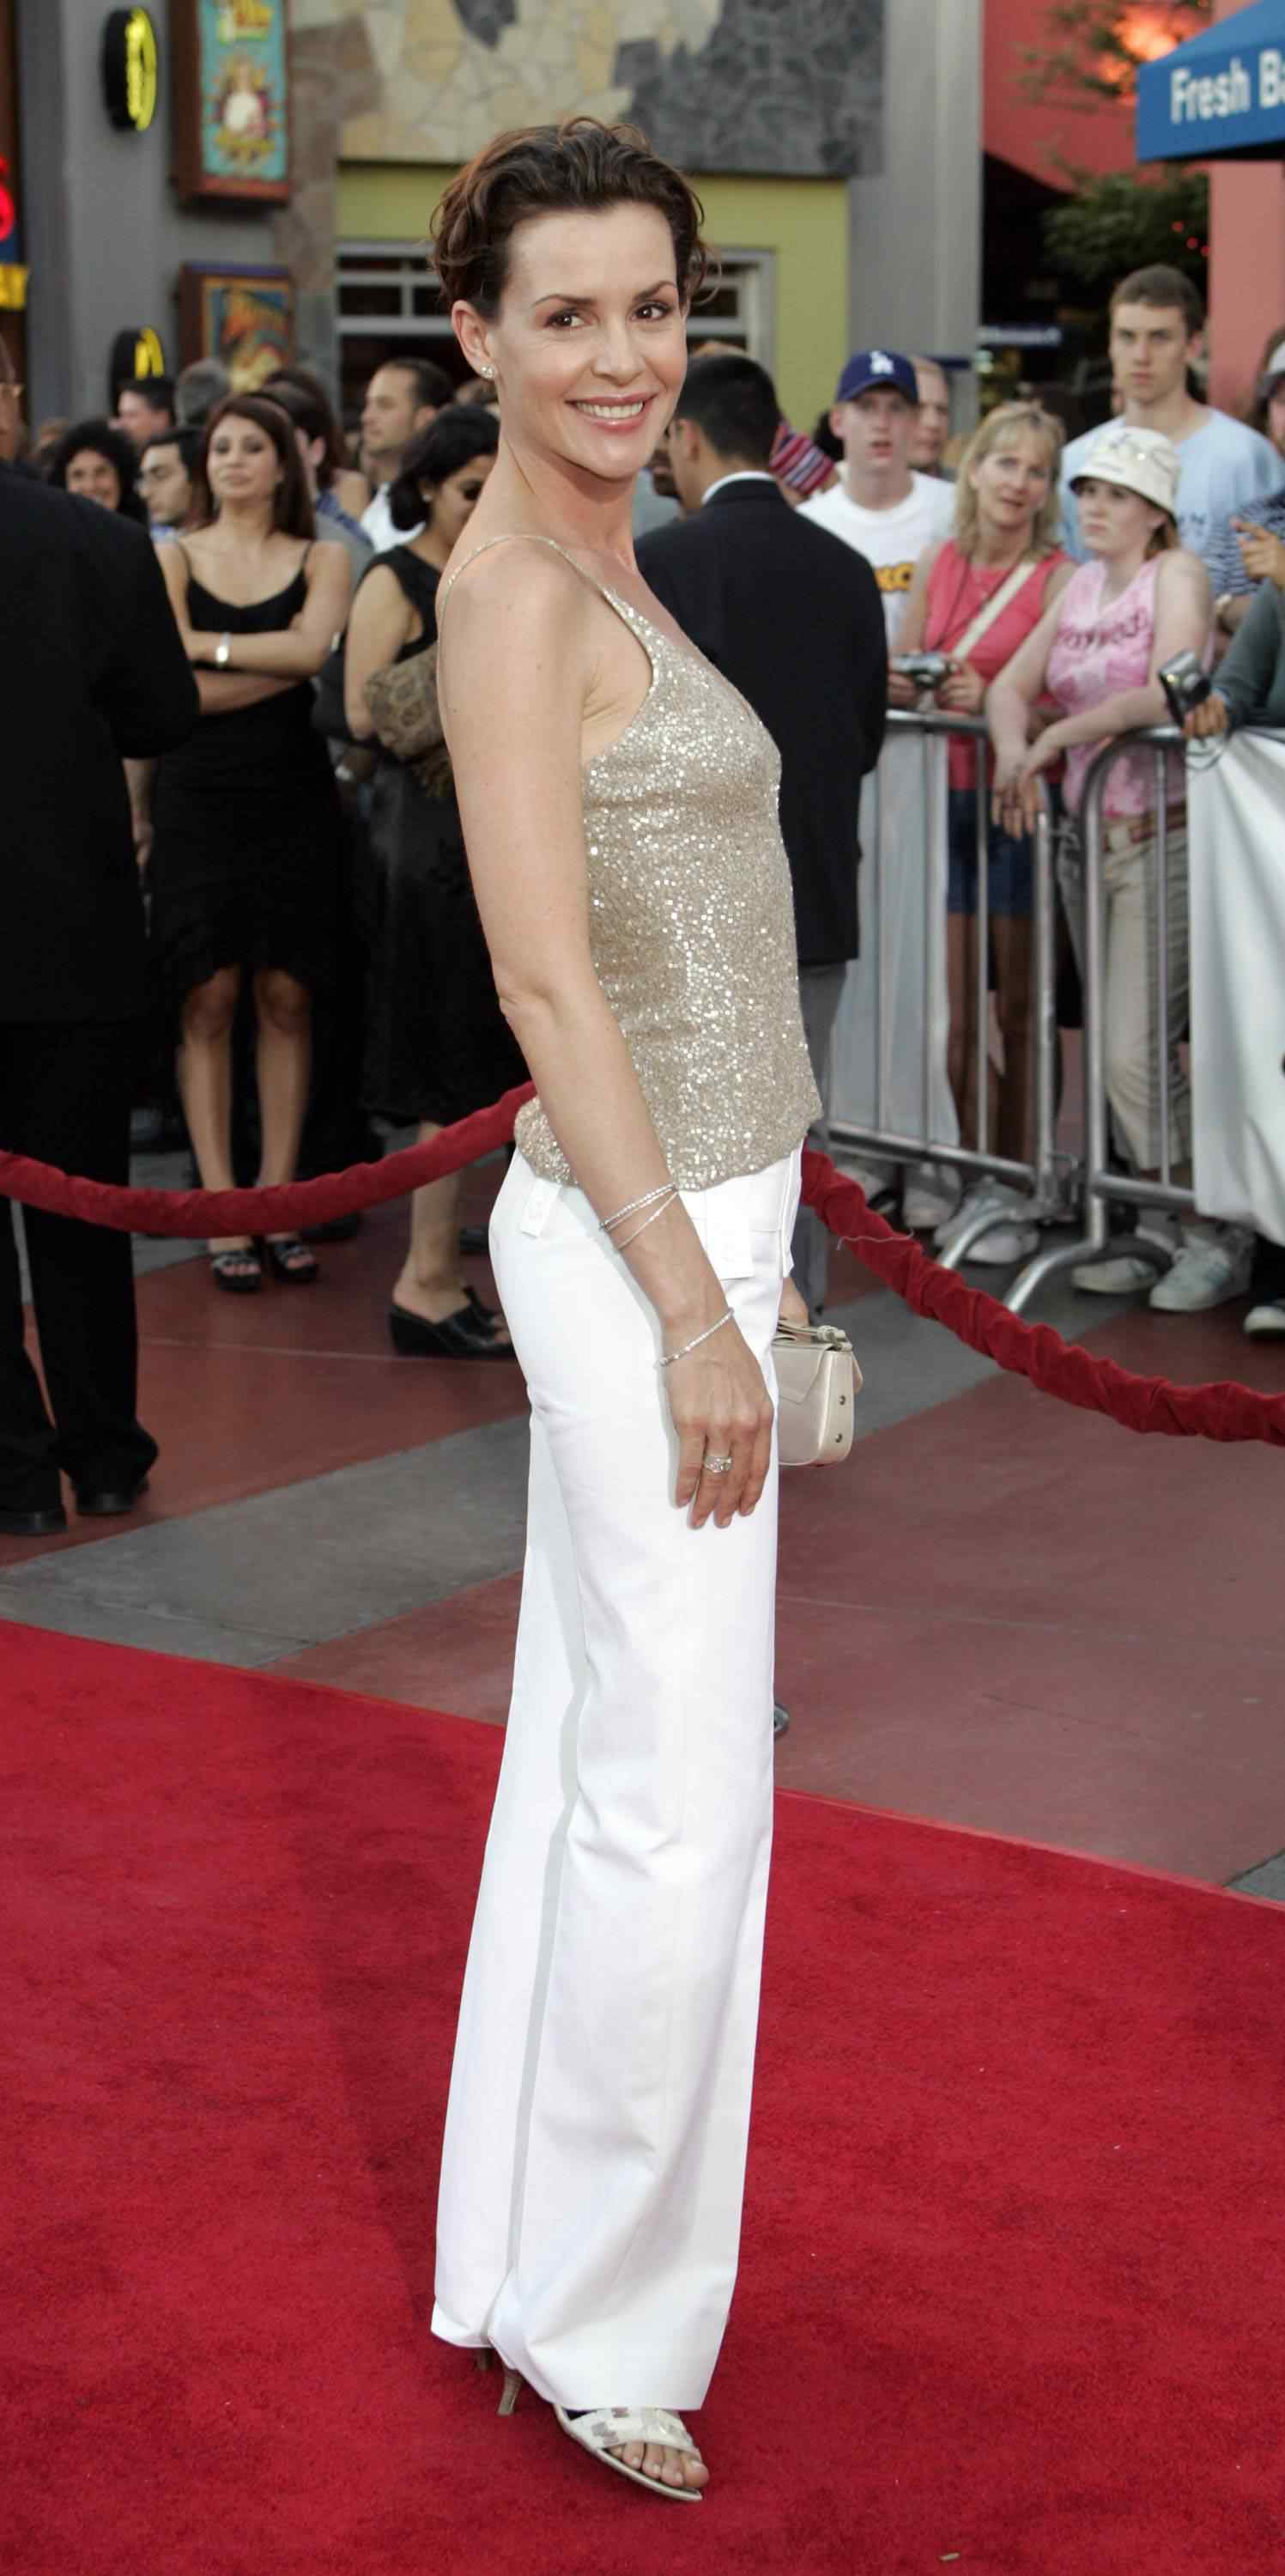 Embeth Davidtz Californication 30 hot pictures of embeth davidtz will make your pray her